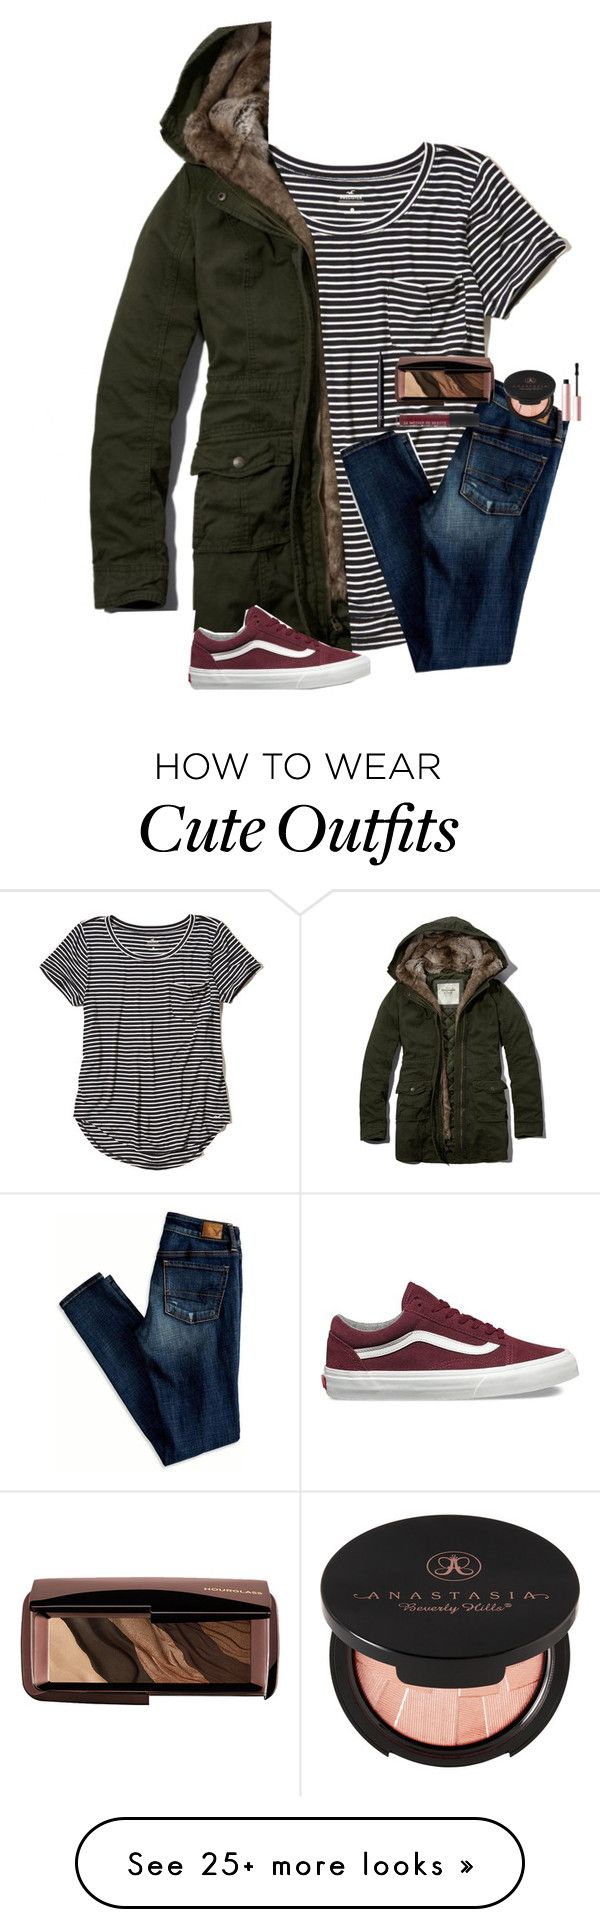 """ahhh a hot guy called me cute!!"" by whitesandprincess on Polyvore featuring Hollister Co., Abercrombie & Fitch, American Eagle Outfitters, Vans, Hourglass Cosmetics, Anastasia Beverly Hills, Too Faced Cosmetics and NARS Cosmetics"